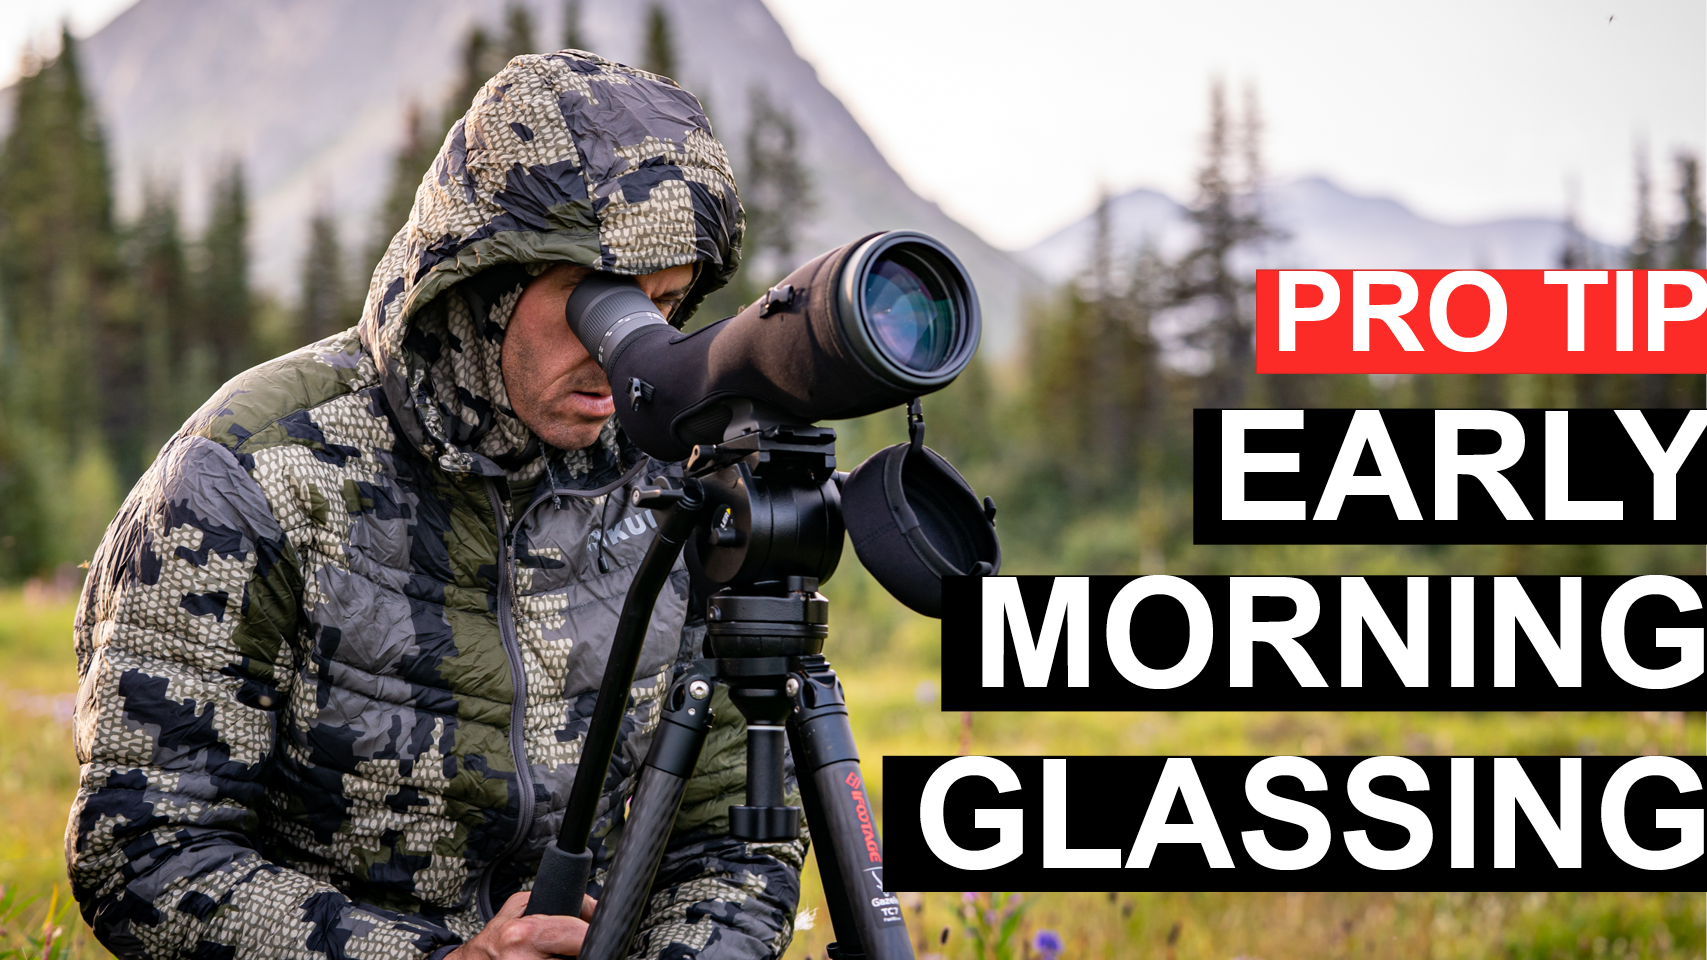 ProTip: Early Morning Glassing